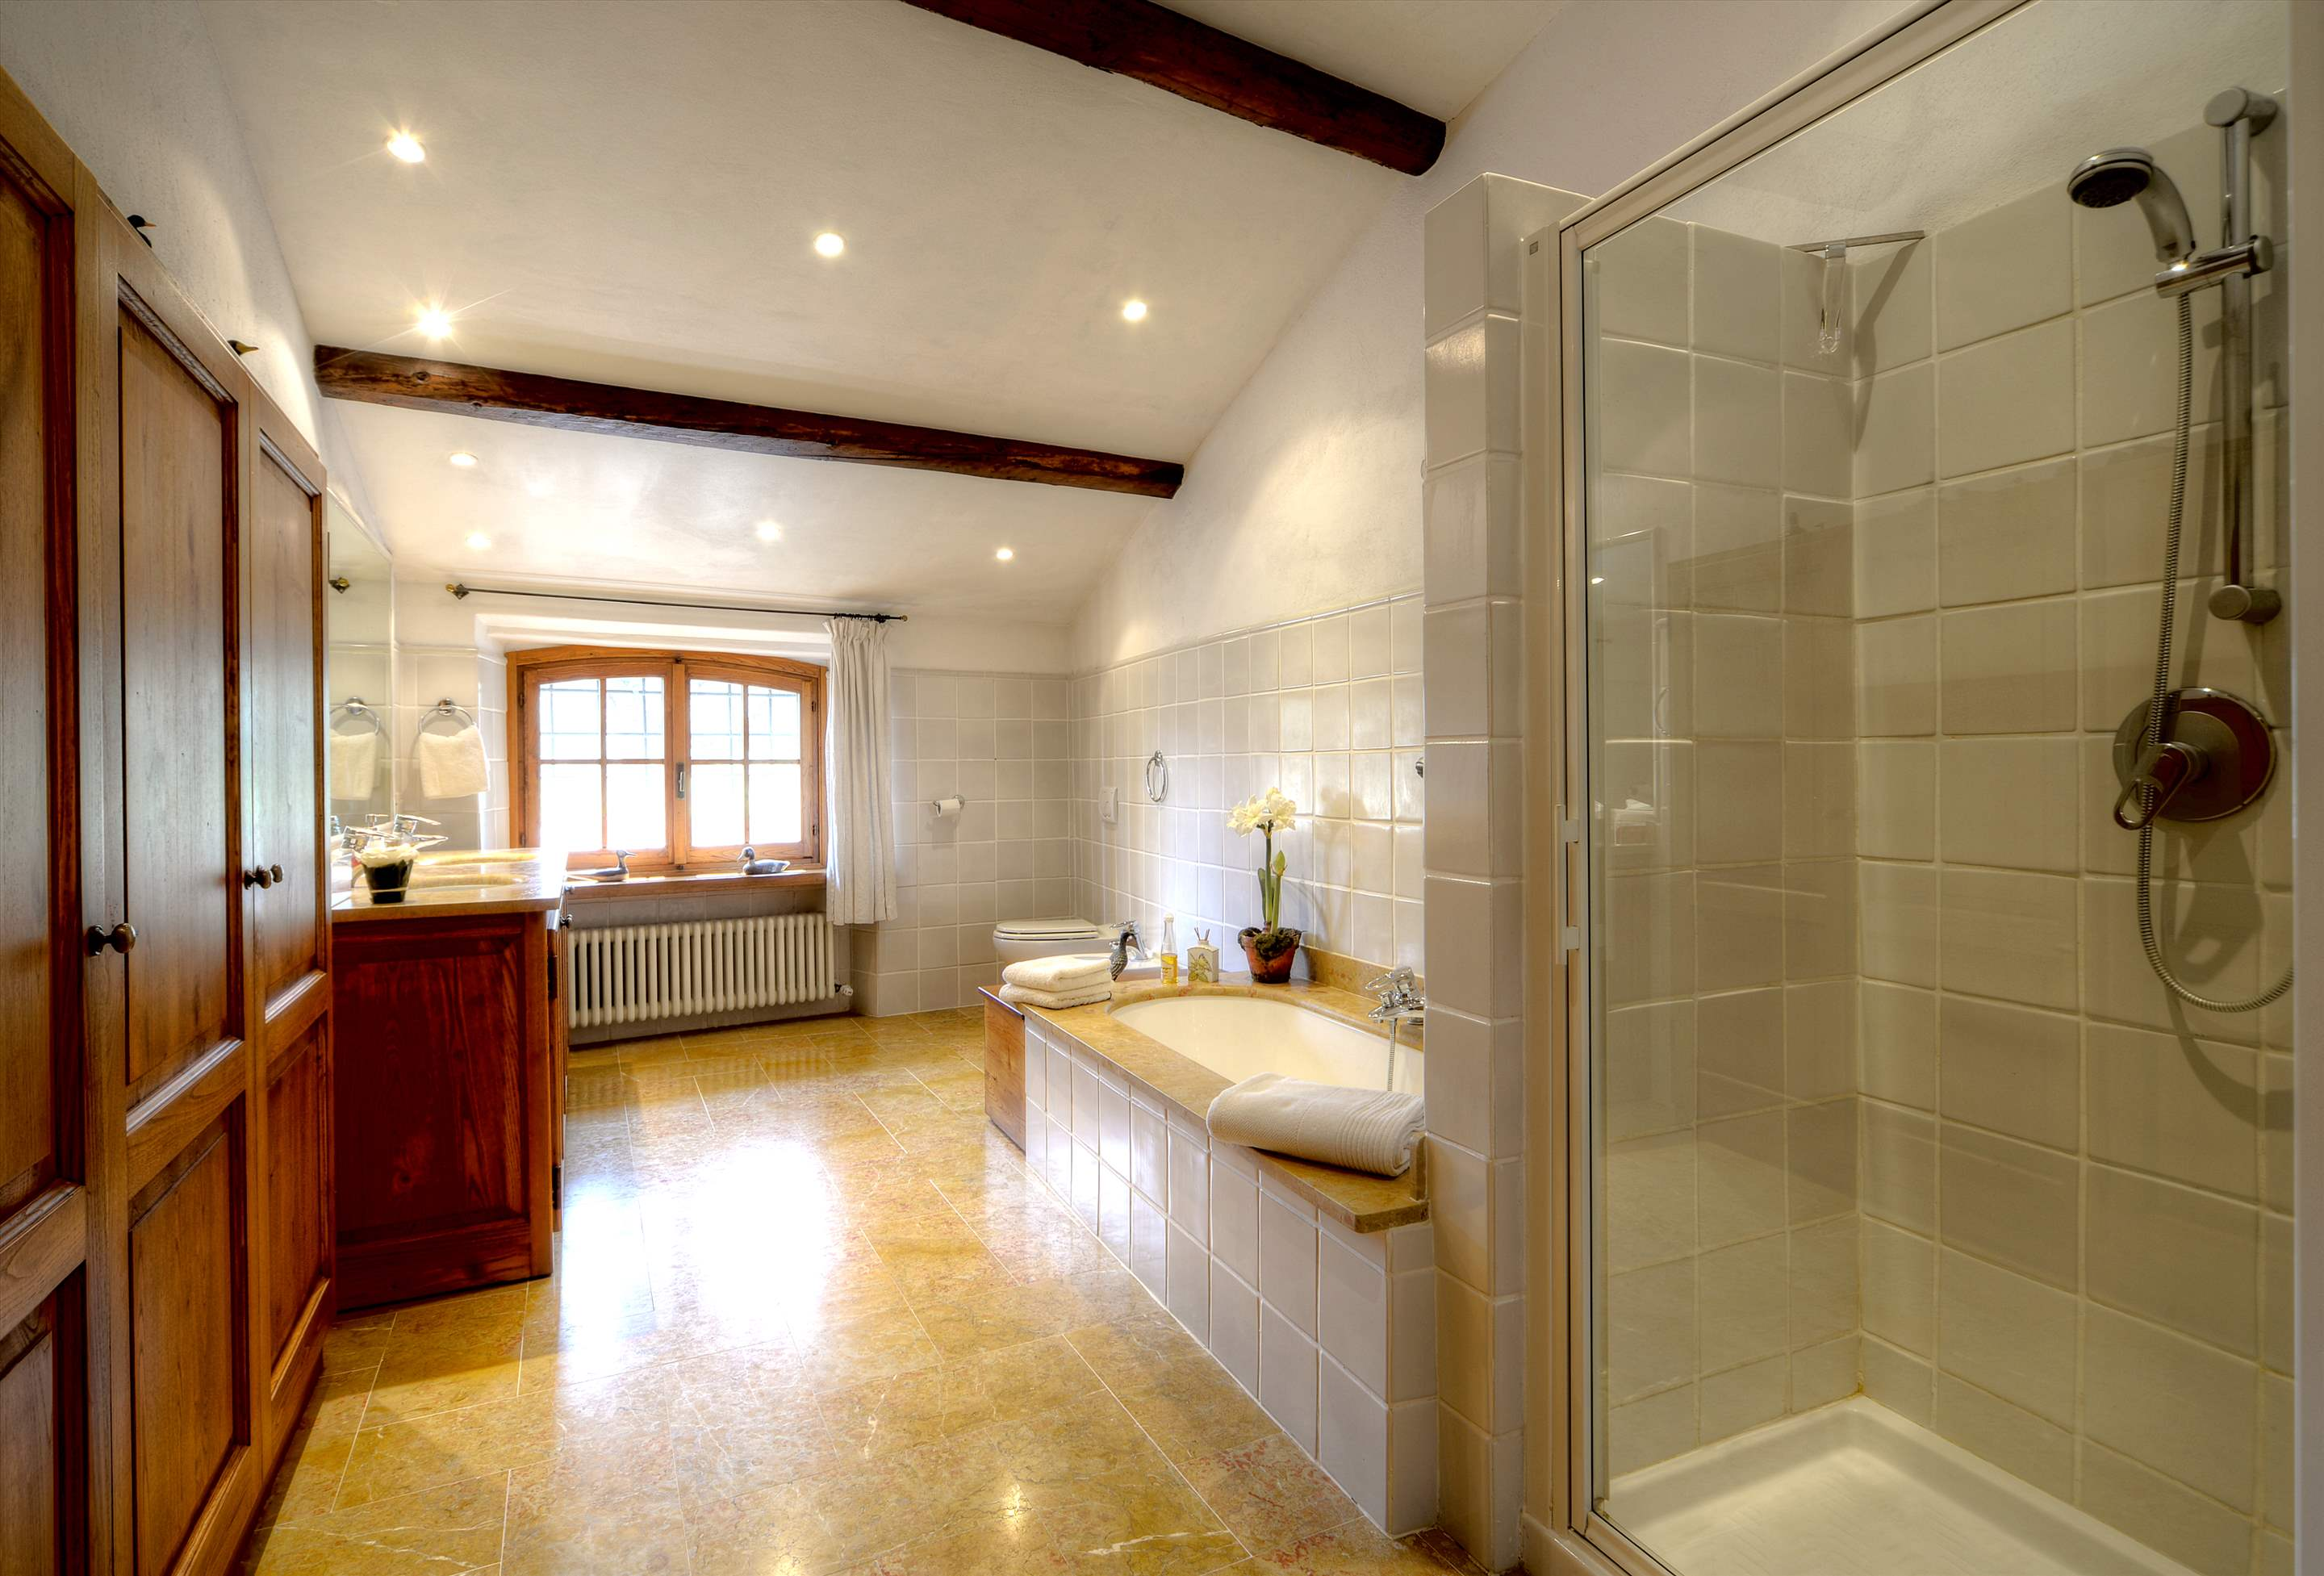 Villa Campana, 5 bedroom villa in Chianti & Countryside, Tuscany Photo #15